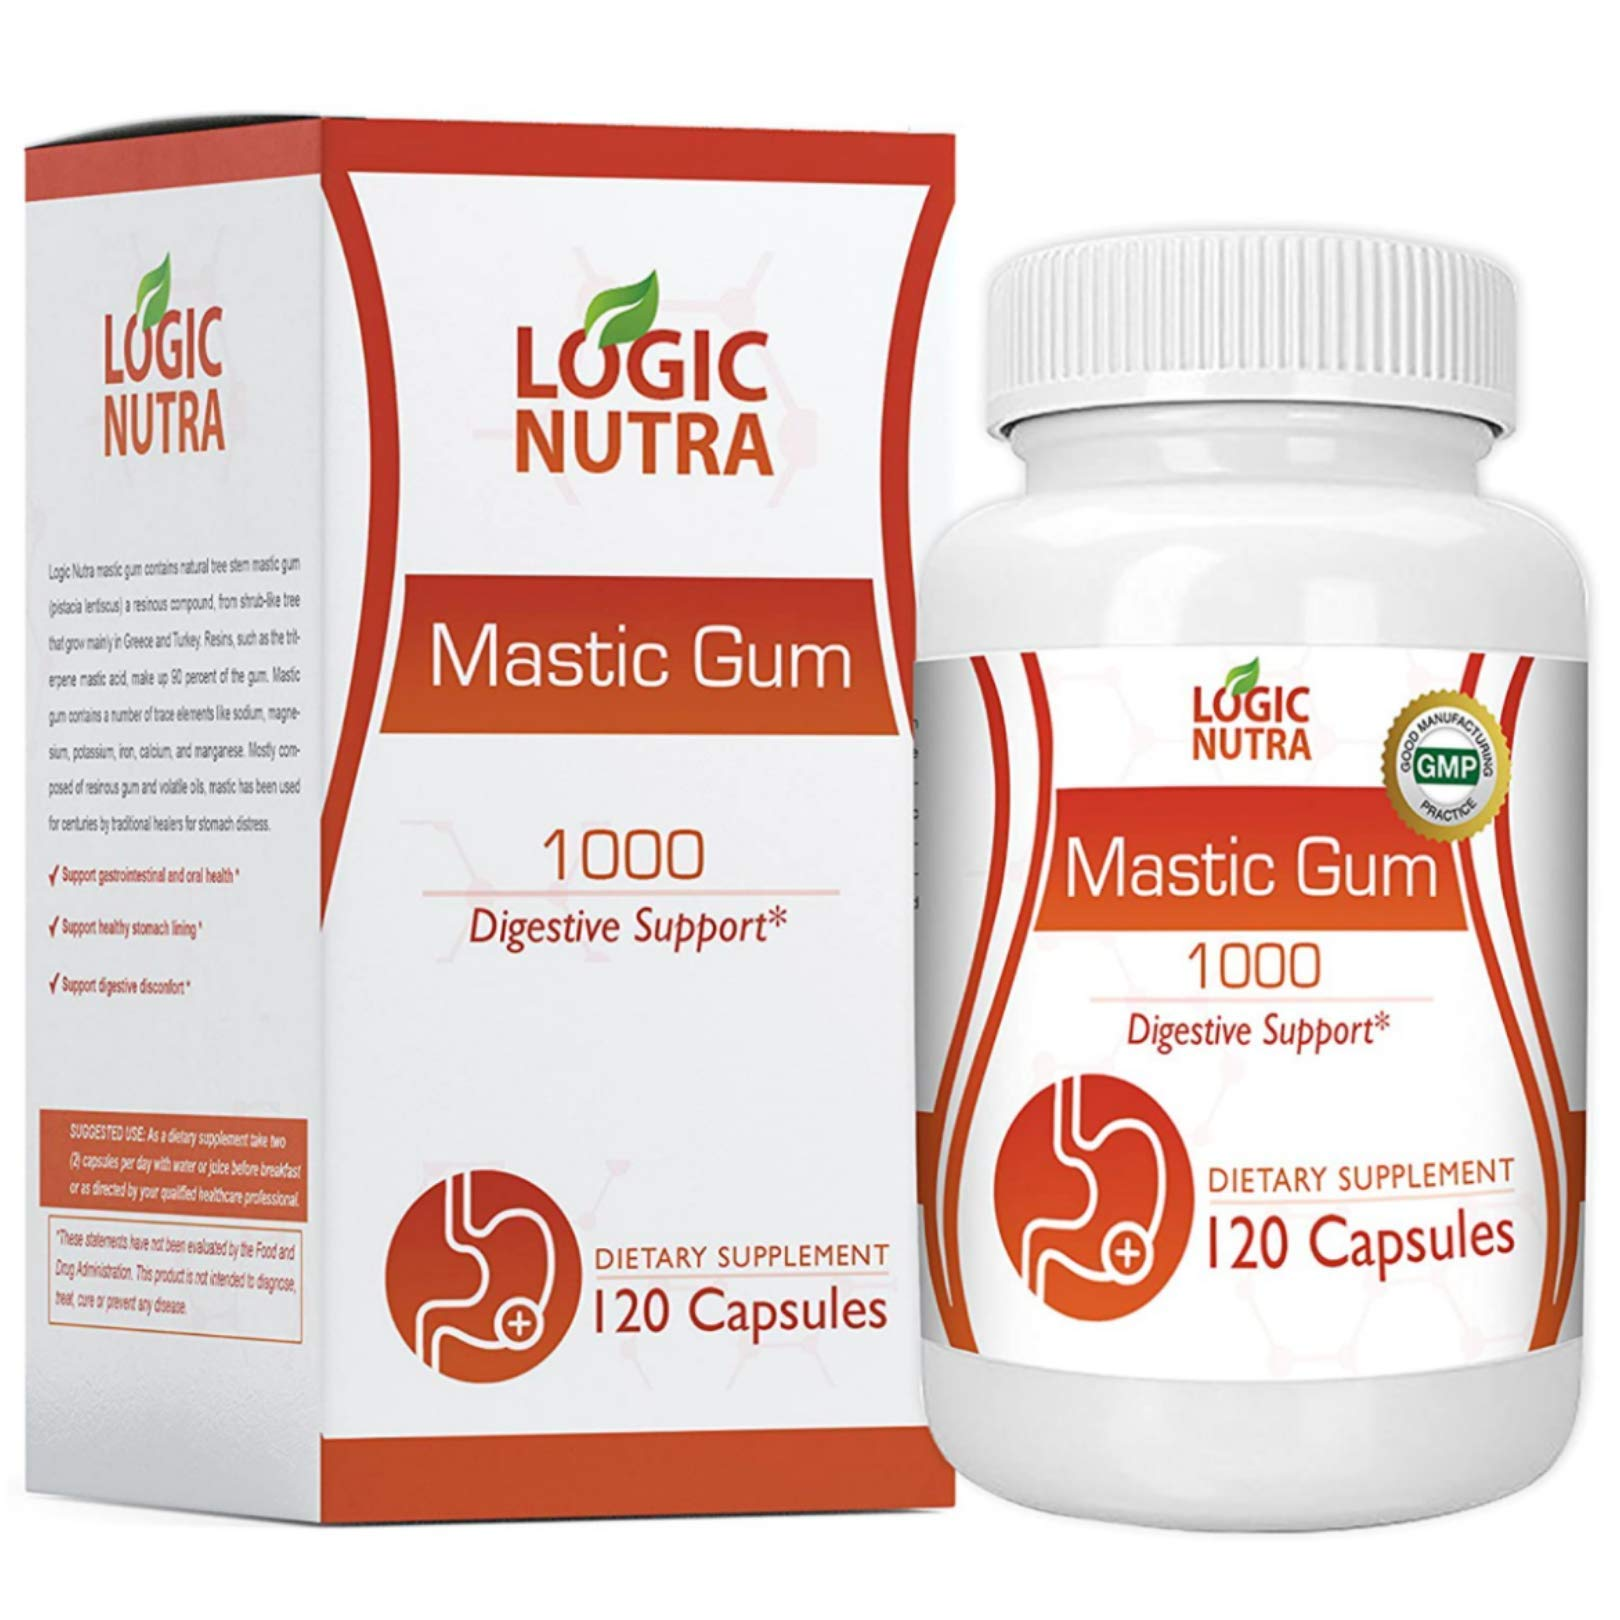 Mastic Gum 1000 mg Vegetarian Capsules by Logic Nutra, Supports Gastrointestinal Health, Digestive System, Immune and Oral Wellness Pylori Plex - Third Party Tested